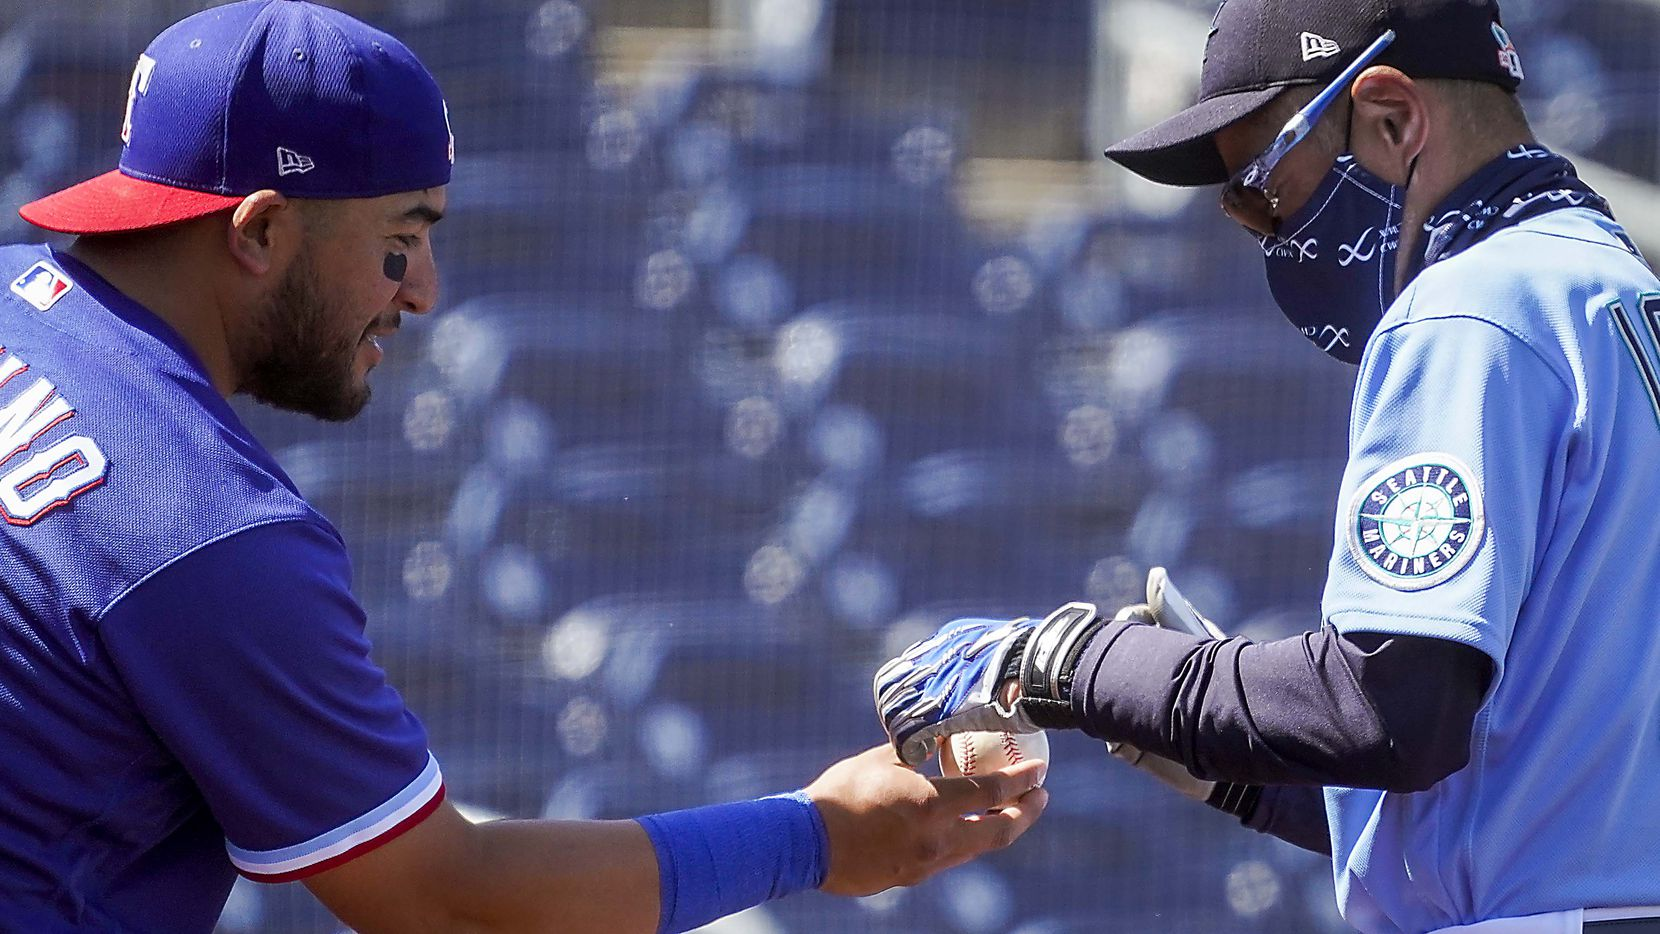 Texas Rangers catcher Jose Trevino hands a ball to Seattle Mariners special assistant to the chairman Ichiro Suzuki to get his autograph before a spring training game at Peoria Sports Complex on Wednesday, March 10, 2021, in Peoria, Ariz.